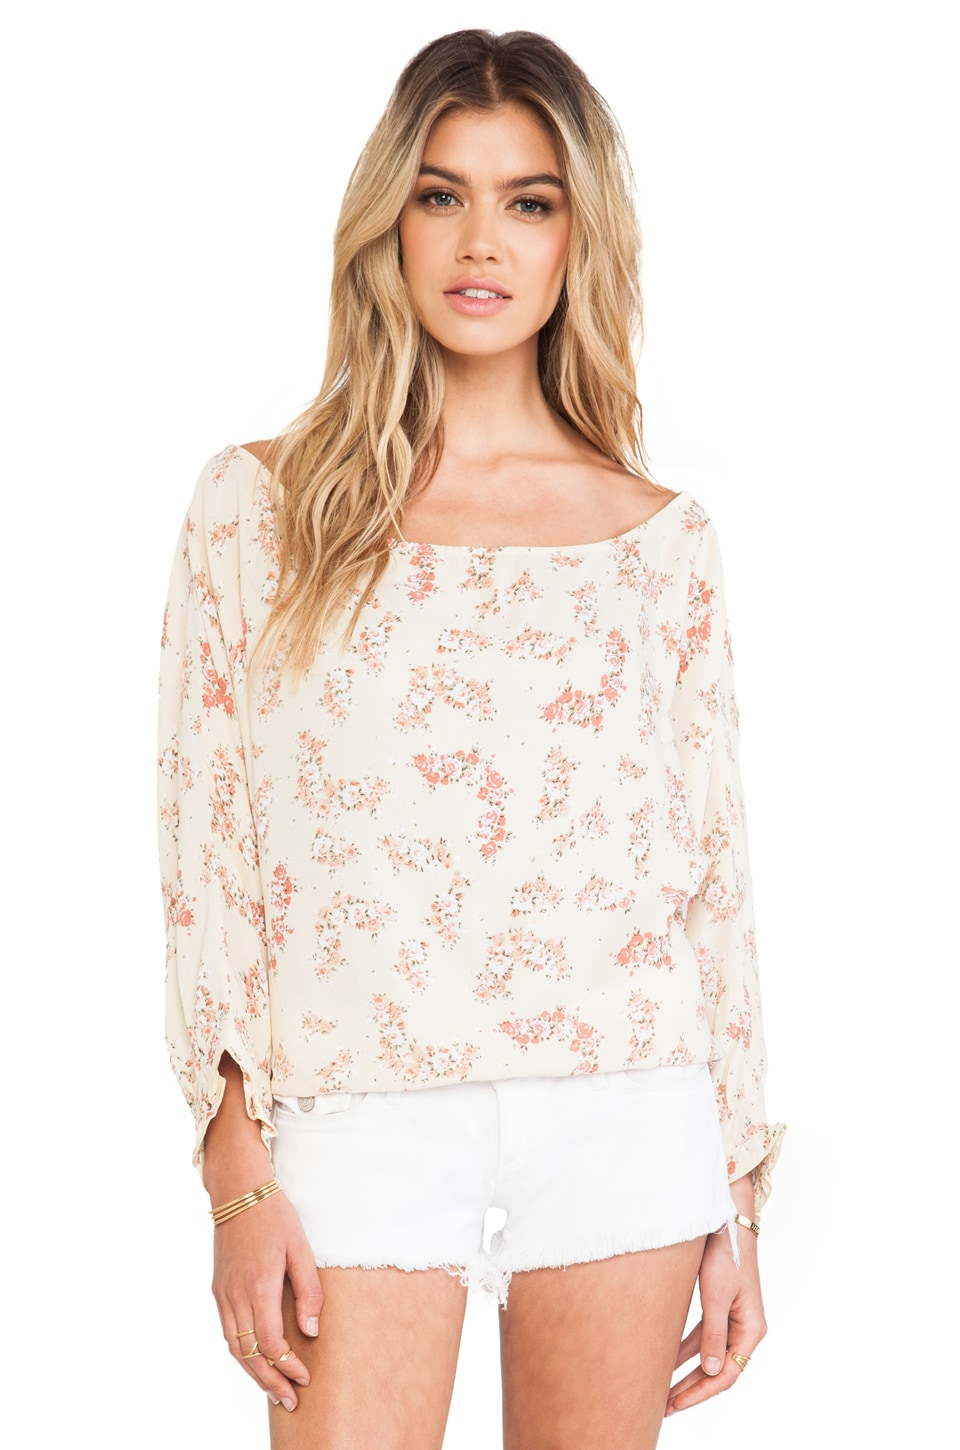 FLYNN SKYE Chealsea Top in Beige Bouquet